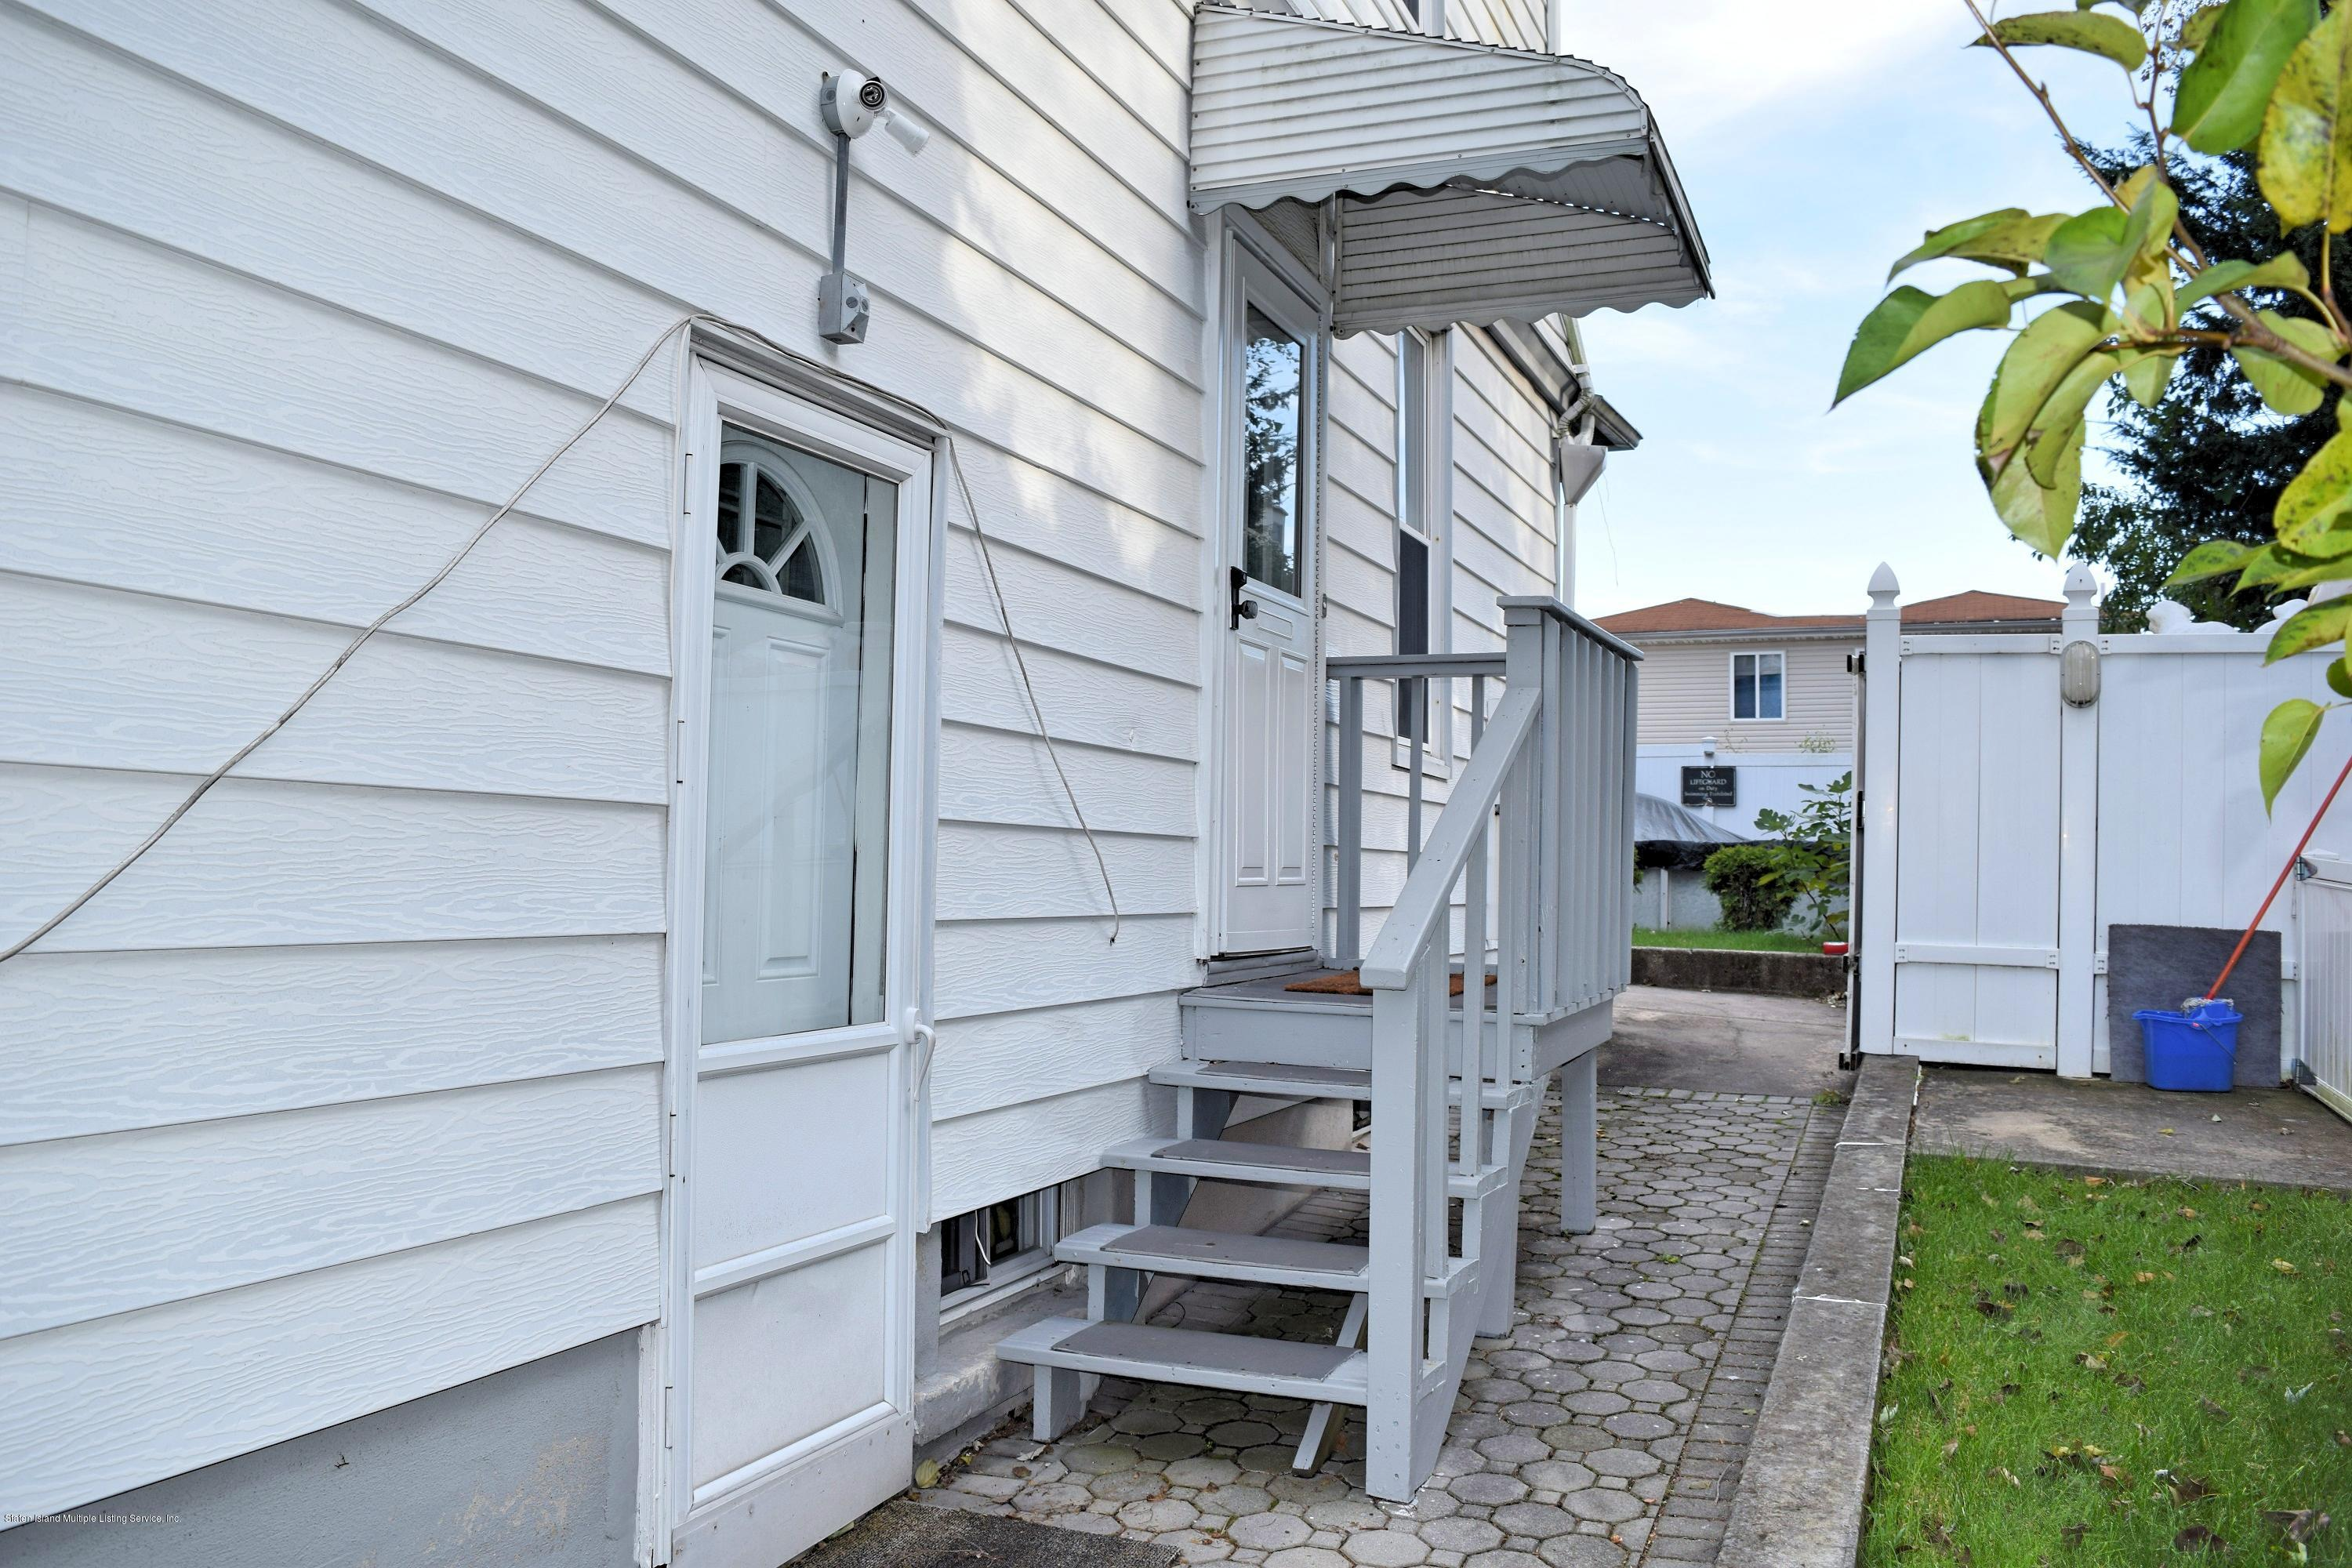 Two Family - Detached 32 Scarboro Avenue  Staten Island, NY 10305, MLS-1123915-8